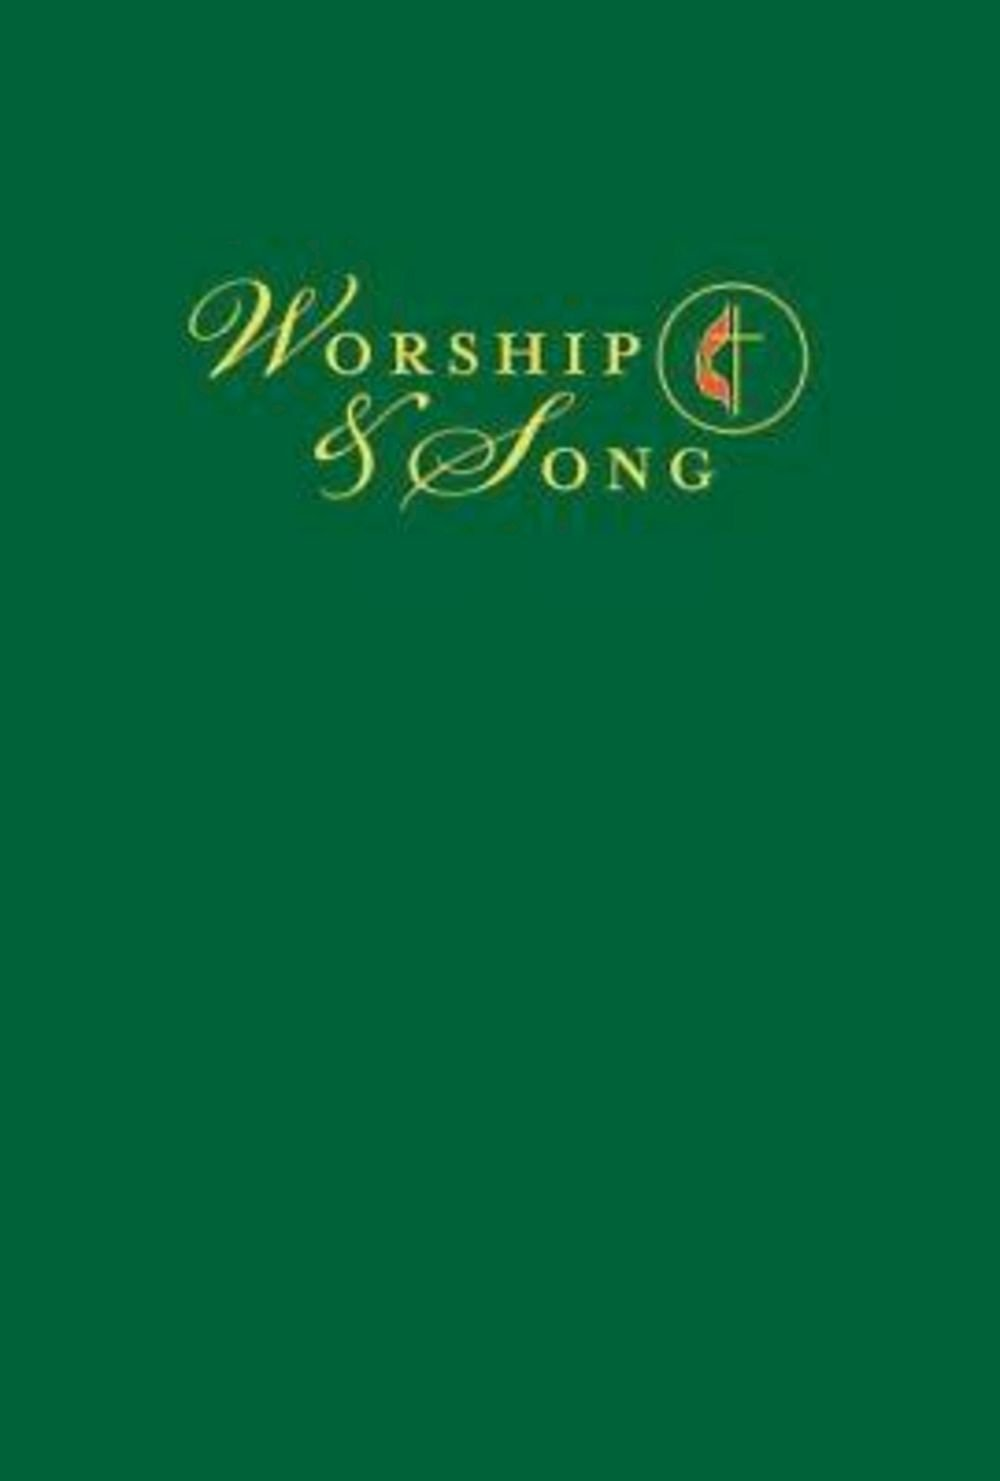 Worship & Song Pew Edition with Cross & Flame